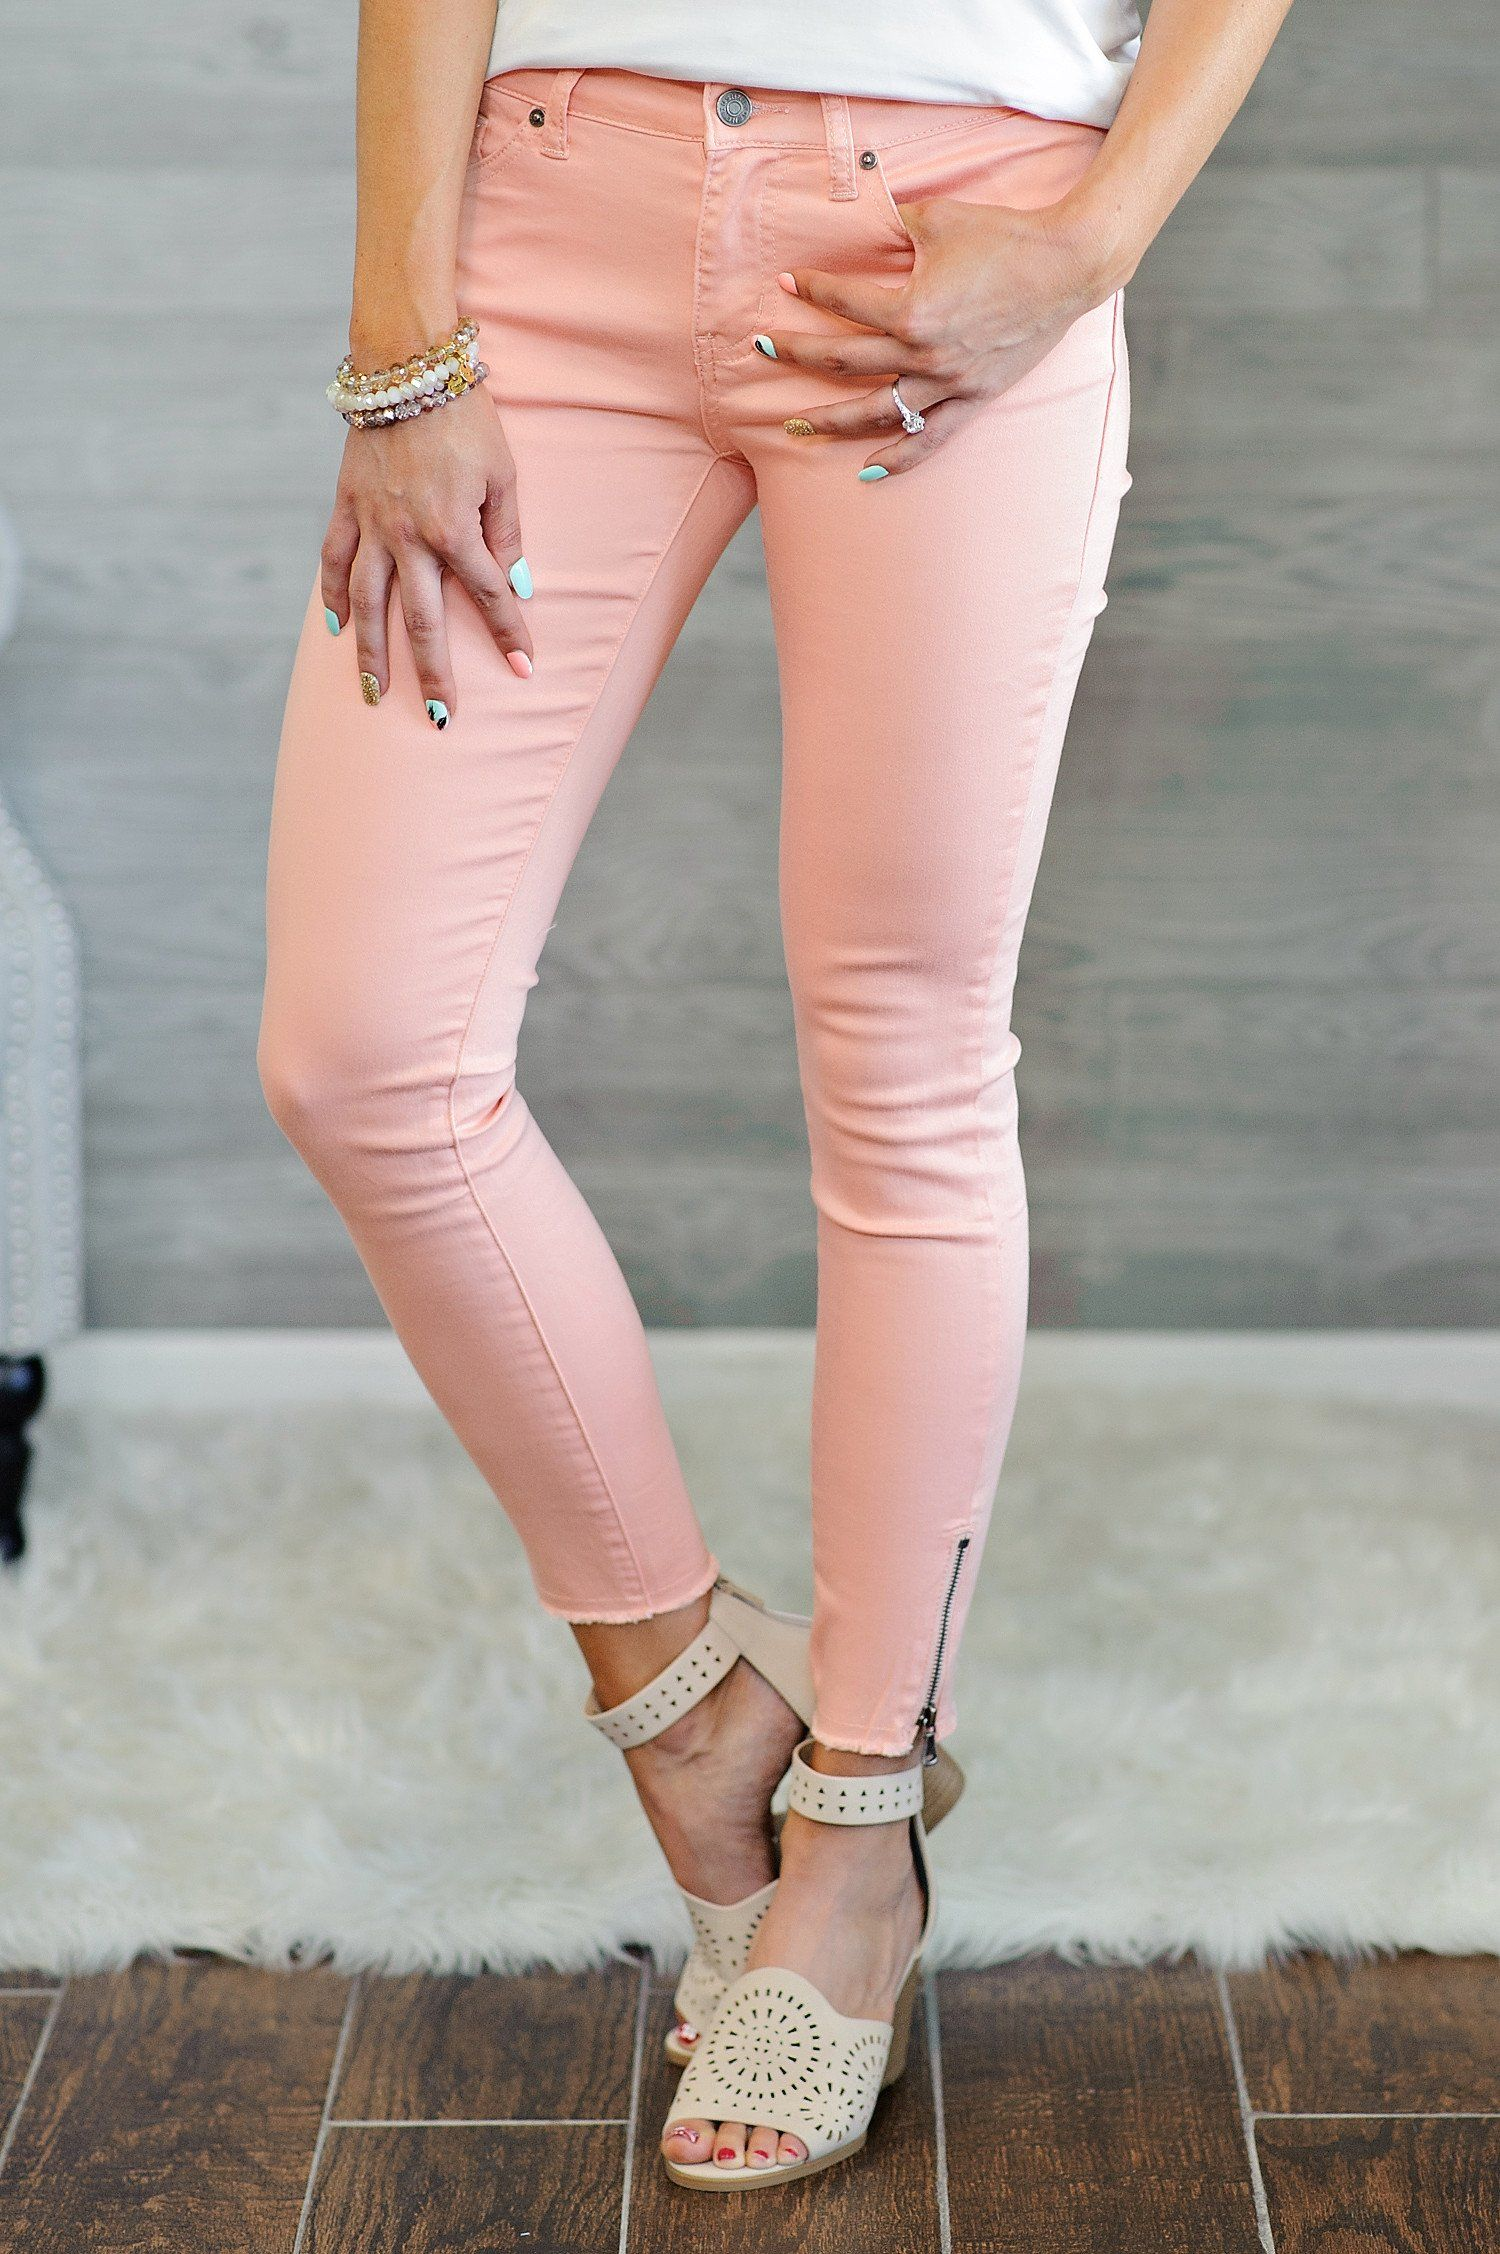 Cassidy Skinny Jean With Zipper Detail : Peach | Pinterest